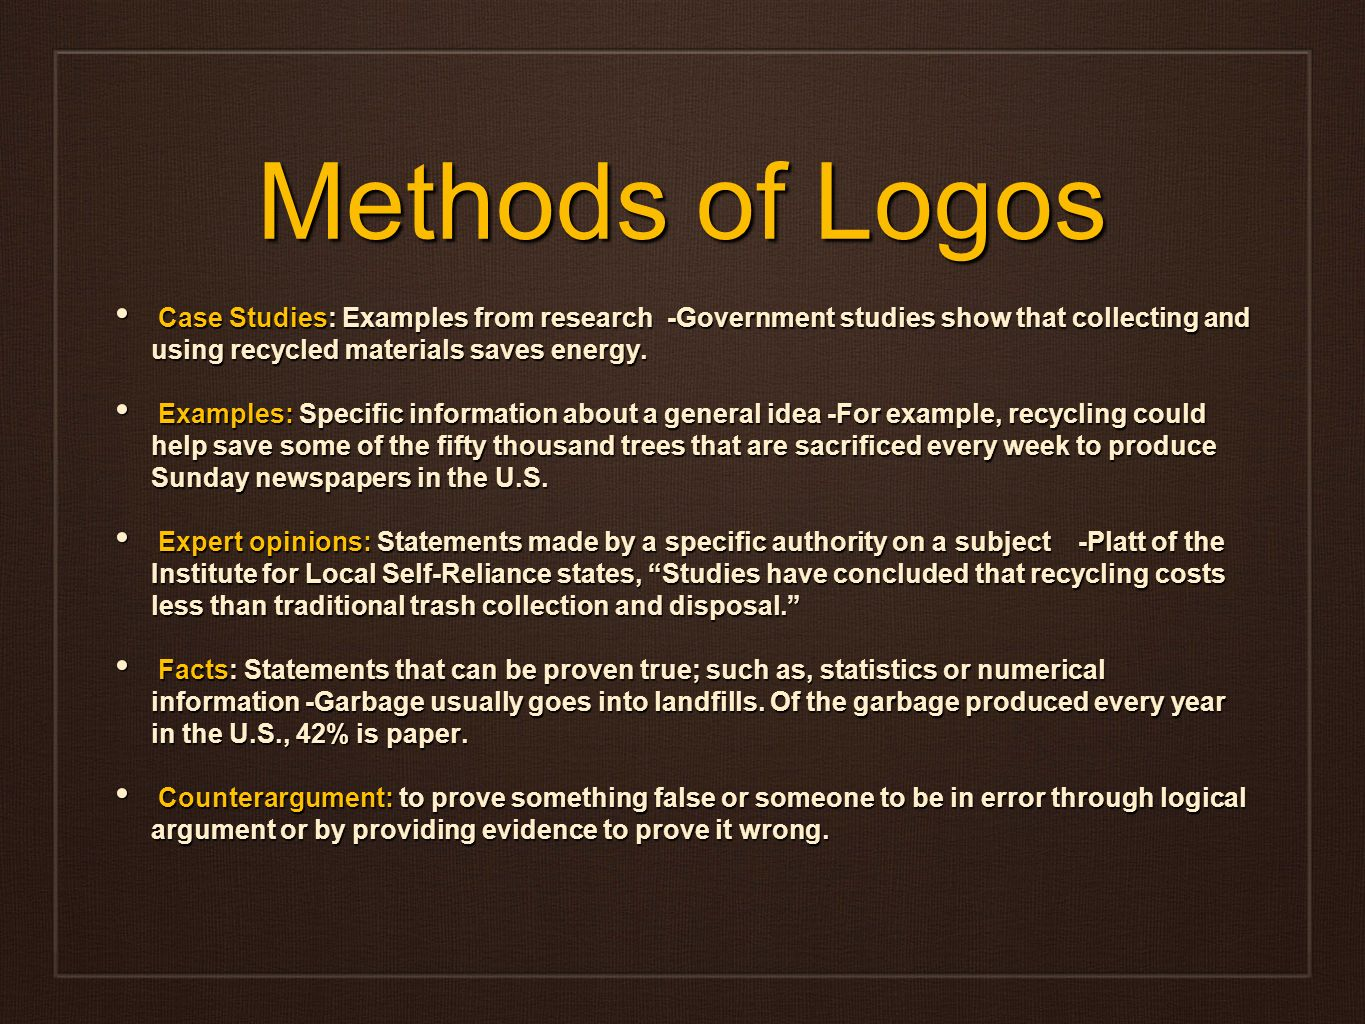 Logos argument example